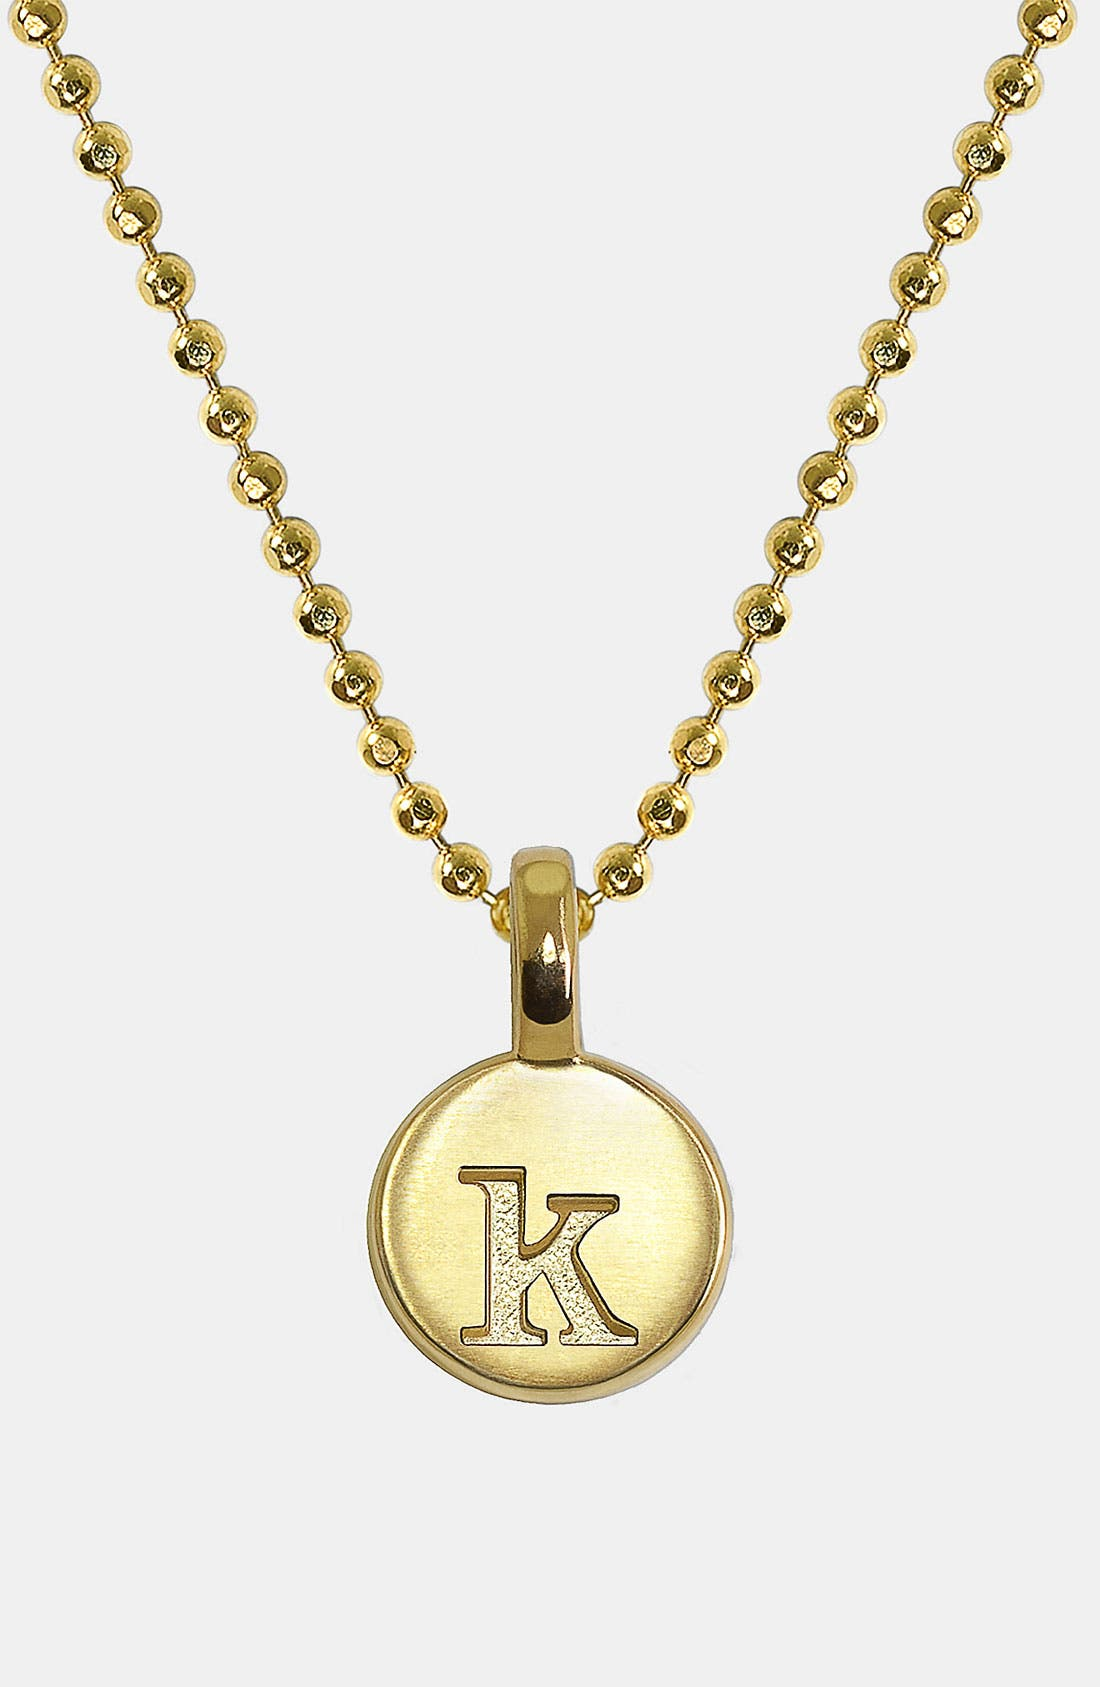 Alternate Image 1 Selected - Alex Woo 'Mini Initial' 14k Gold Pendant Necklace